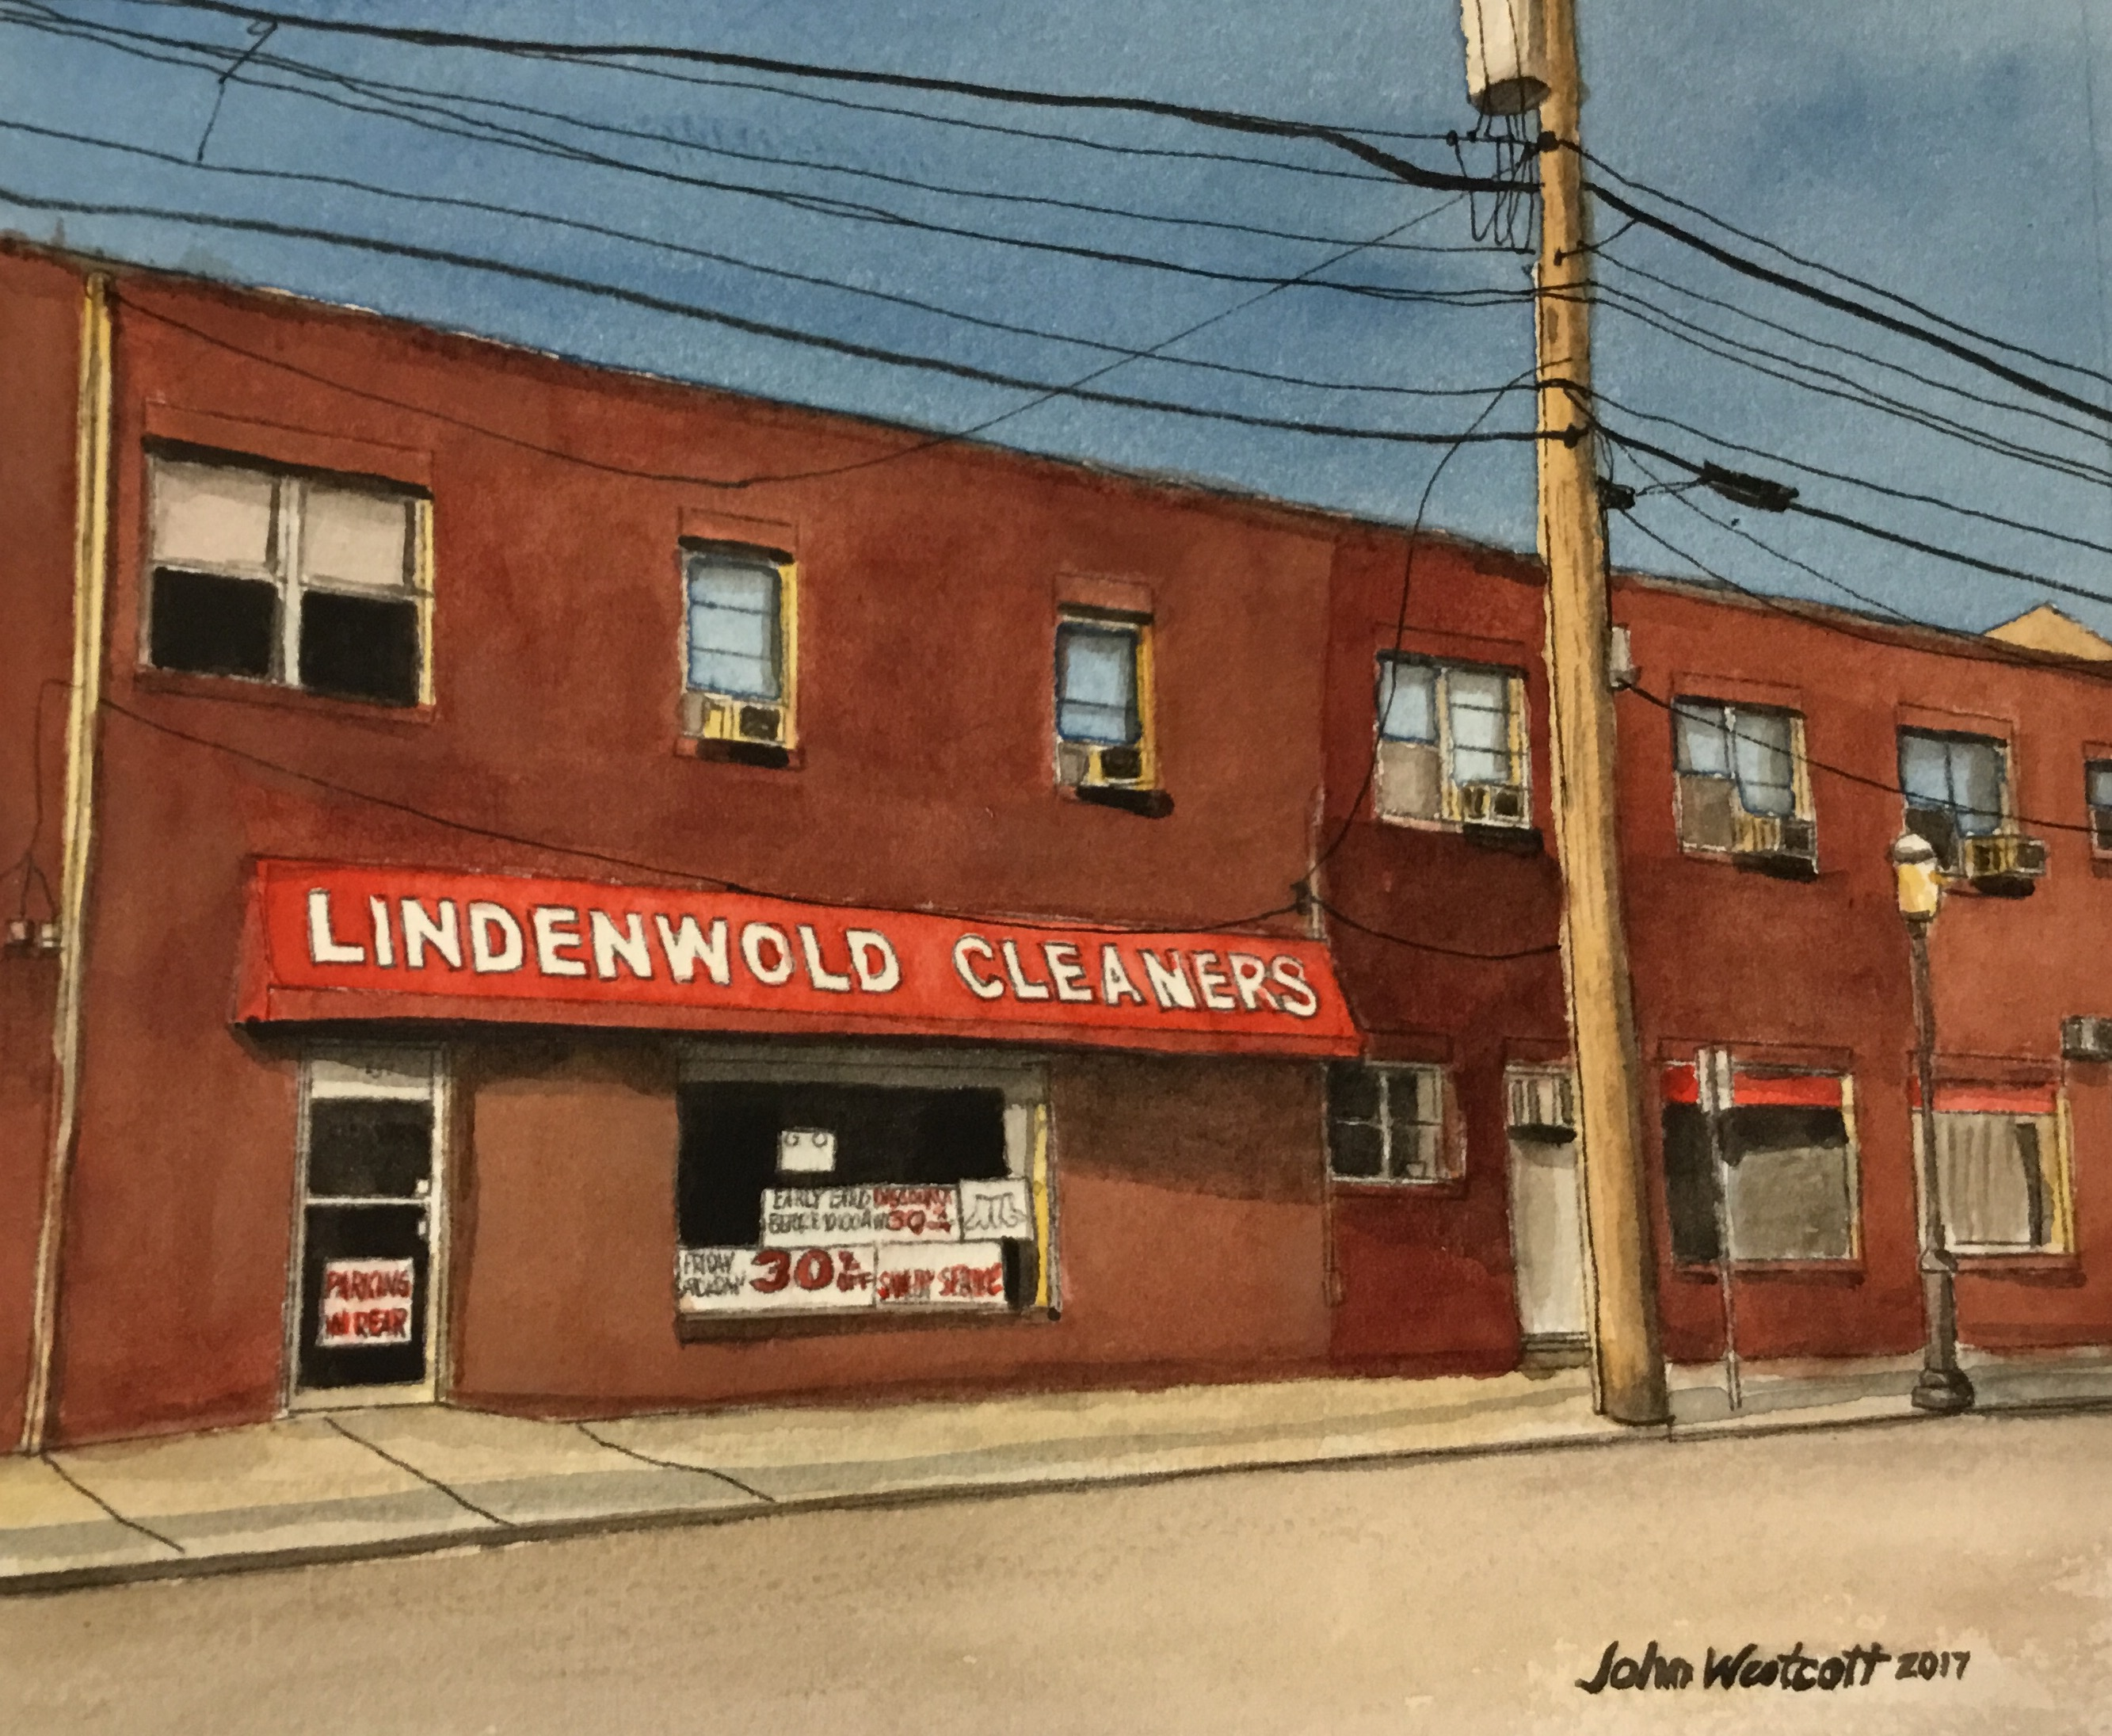 Lindenwold Cleaners in Ambler PA